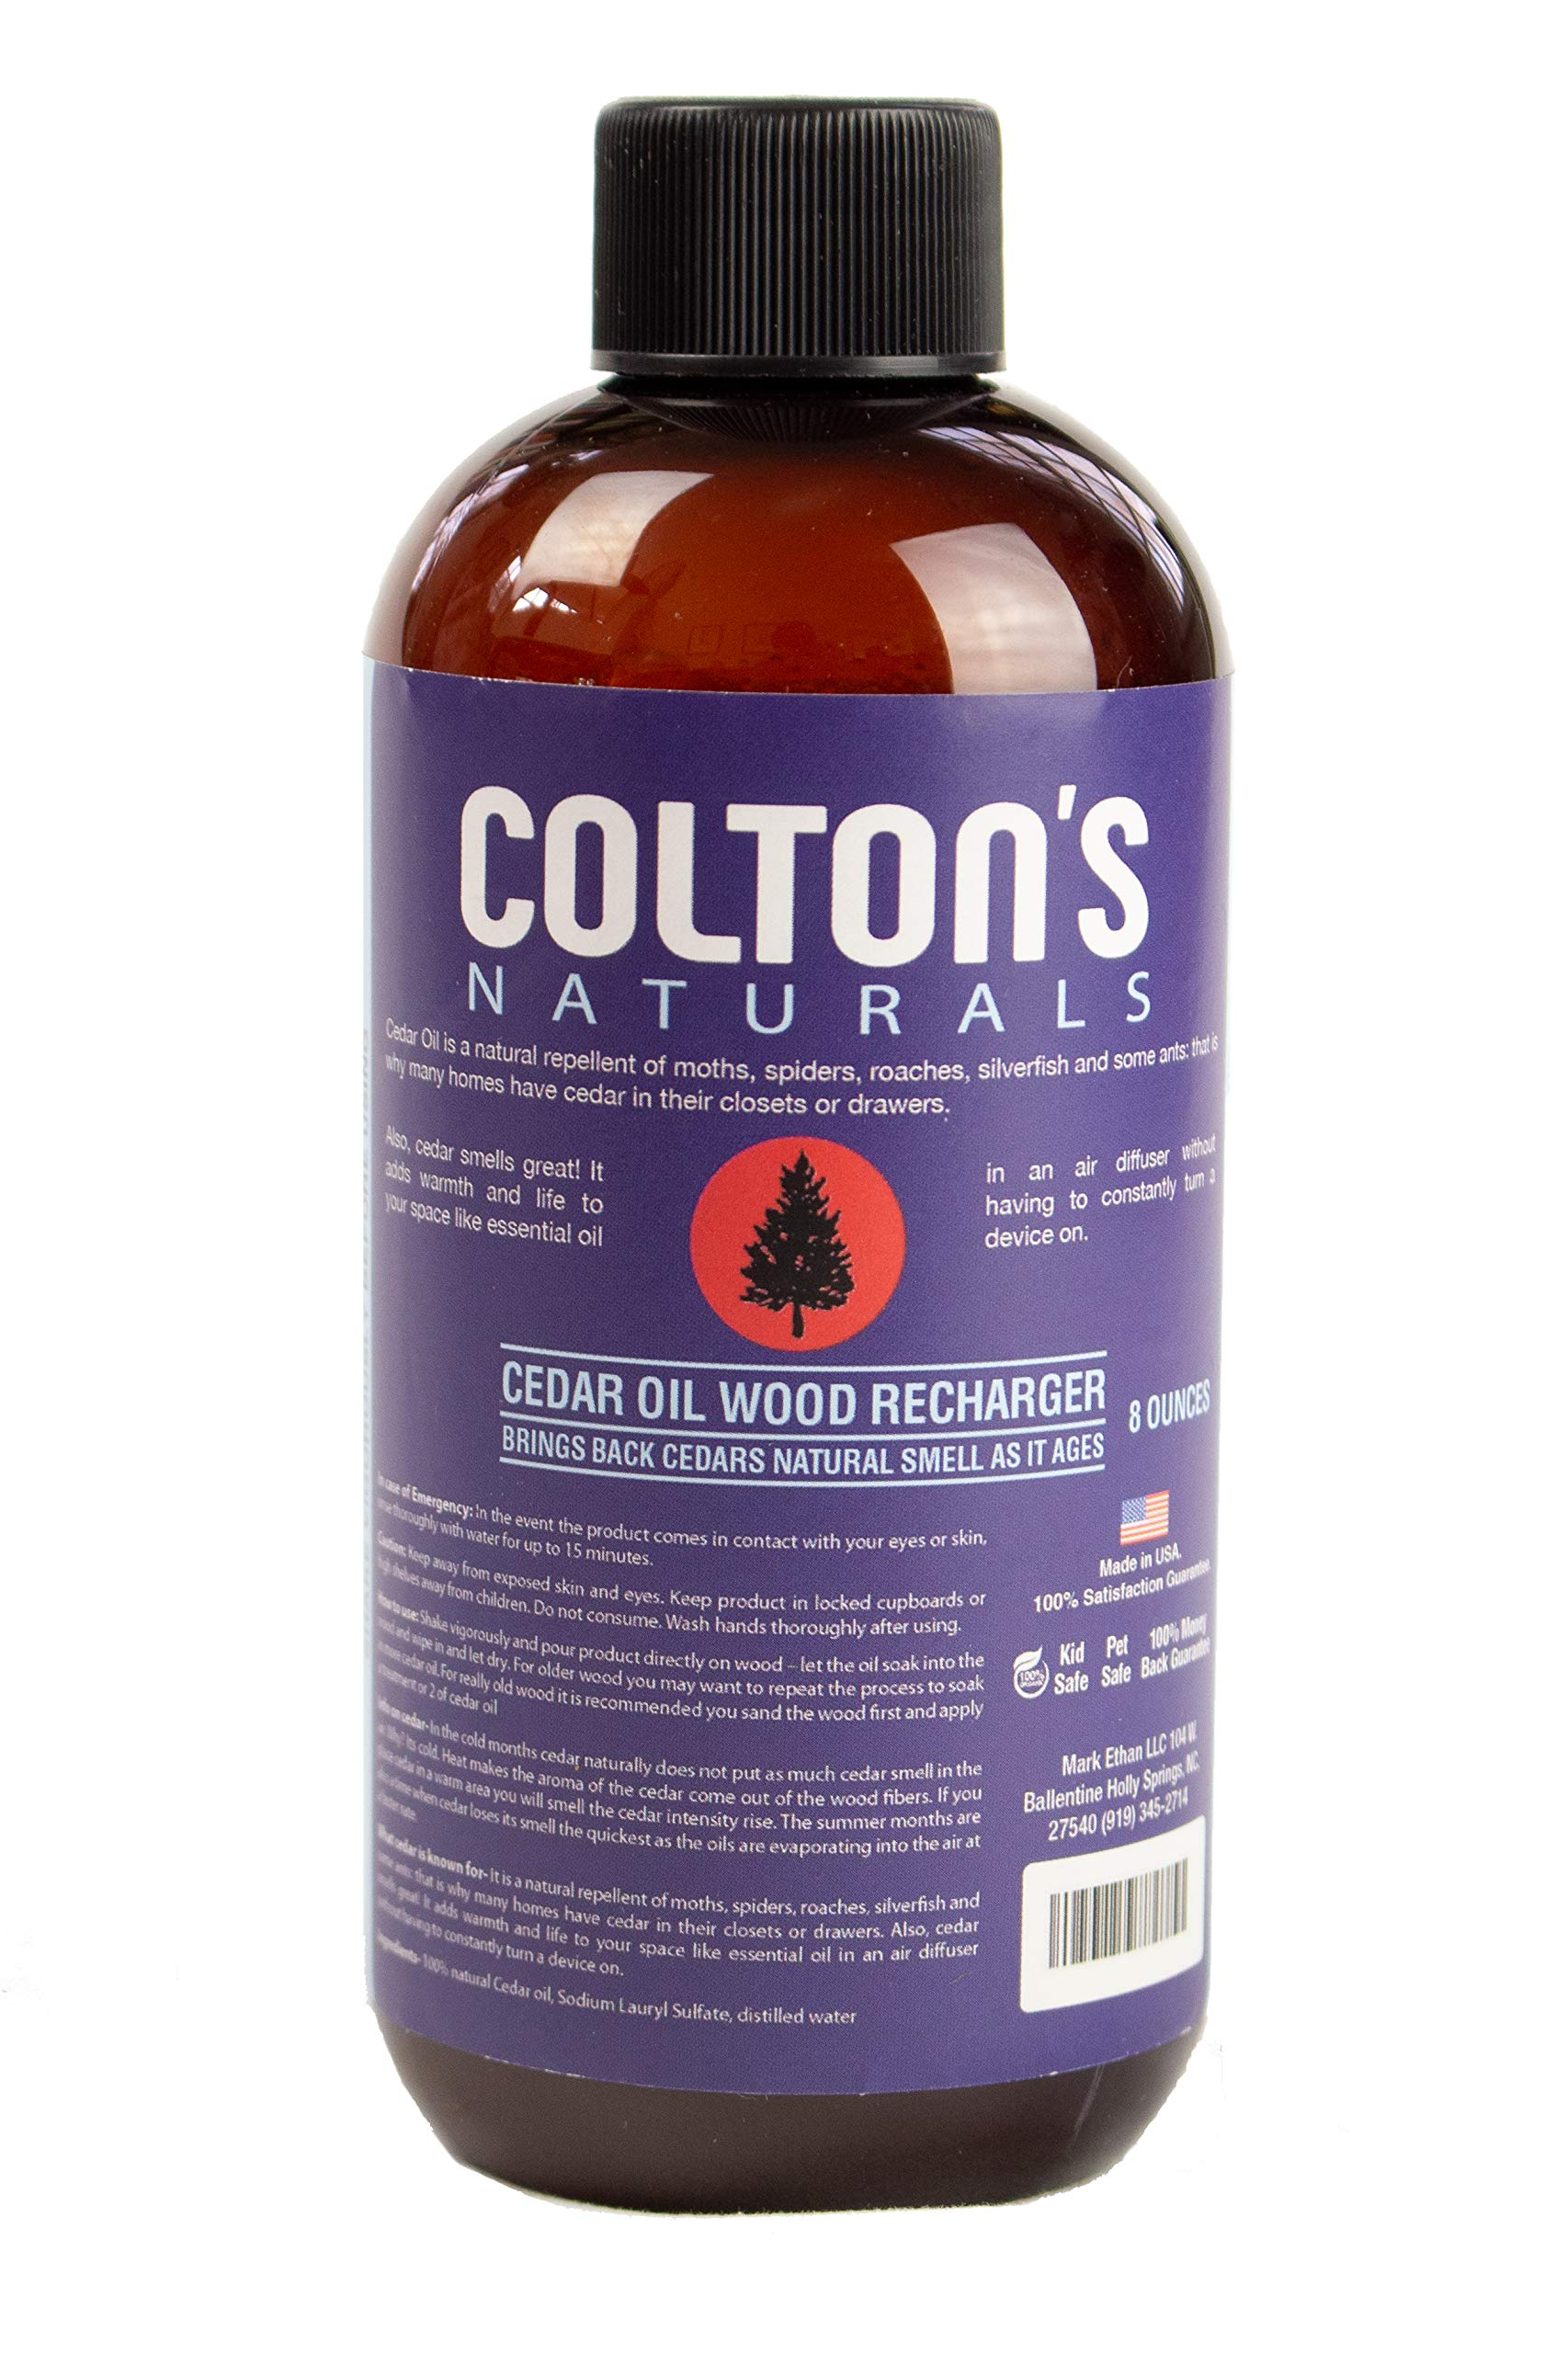 Colton's Naturals Cedar Oil Wood Replenish Original Cedar Scent Restore (32 Ounces) by Colton's Naturals (Image #3)